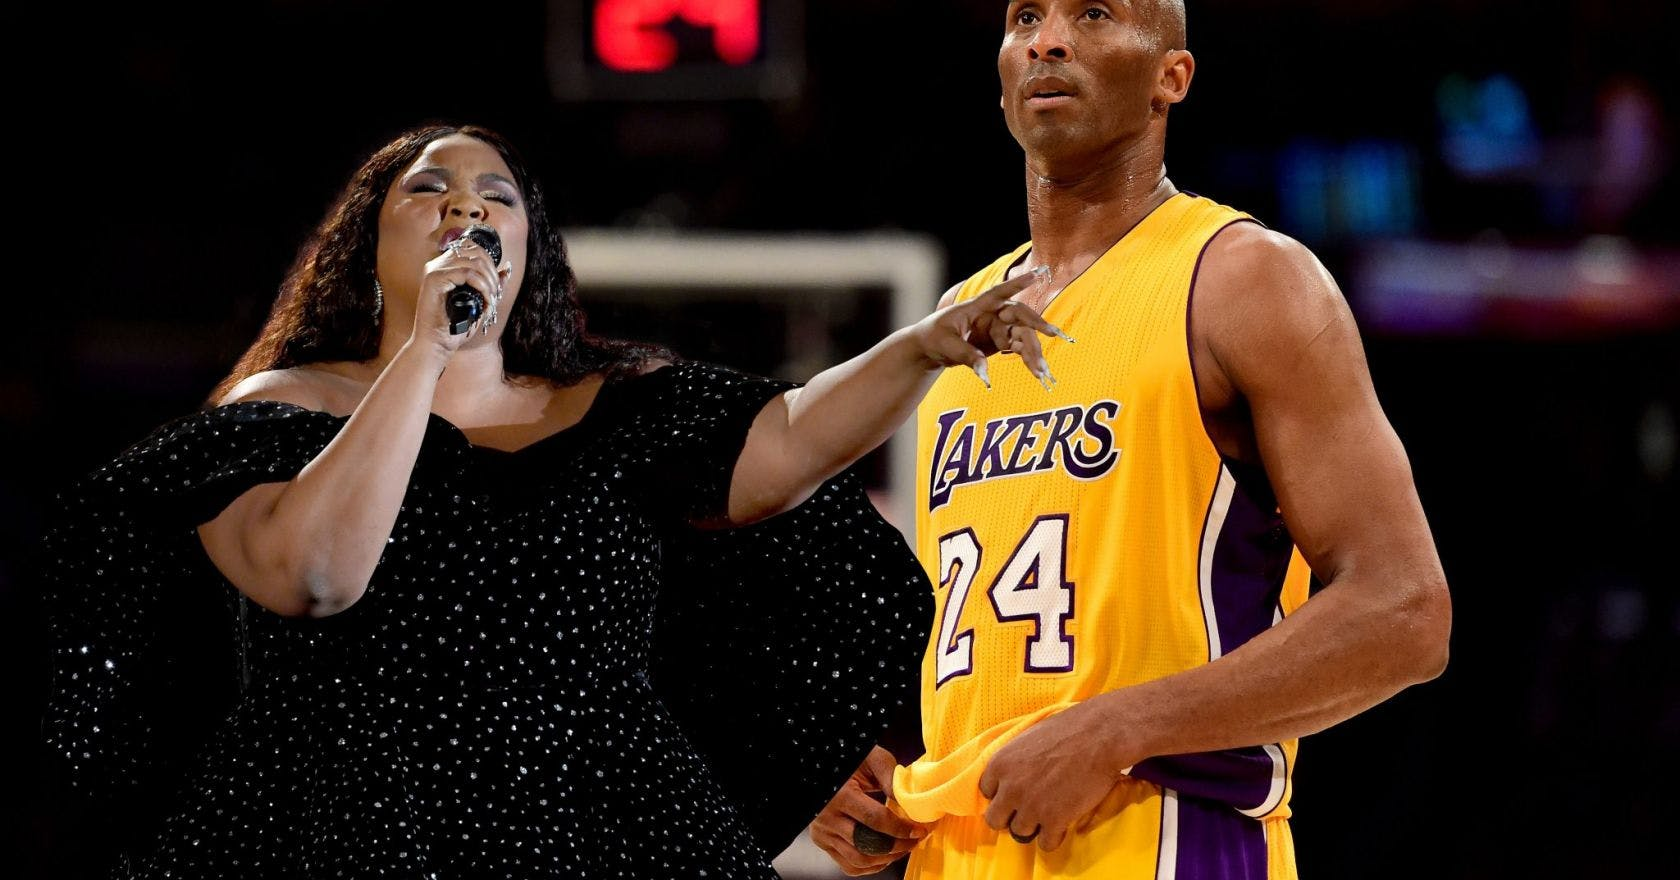 Lizzo's speech about Kobe Bryant perfectly sums up how many of us are feeling